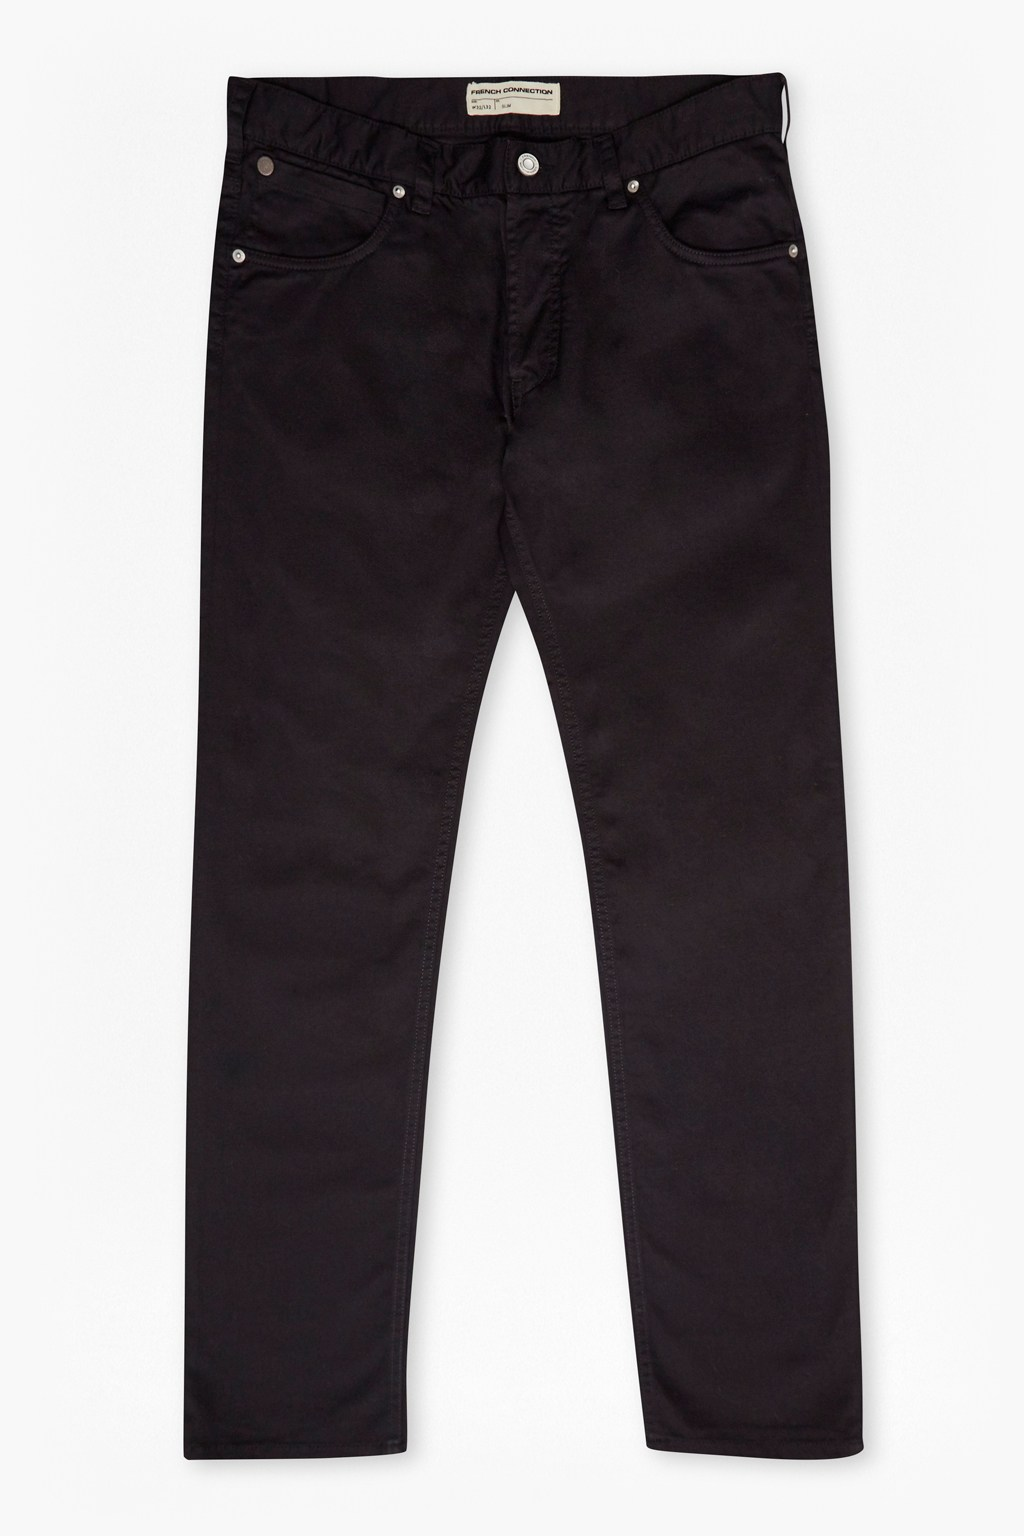 46a1e259e064 5 Pocket Trousers | Collections | French Connection